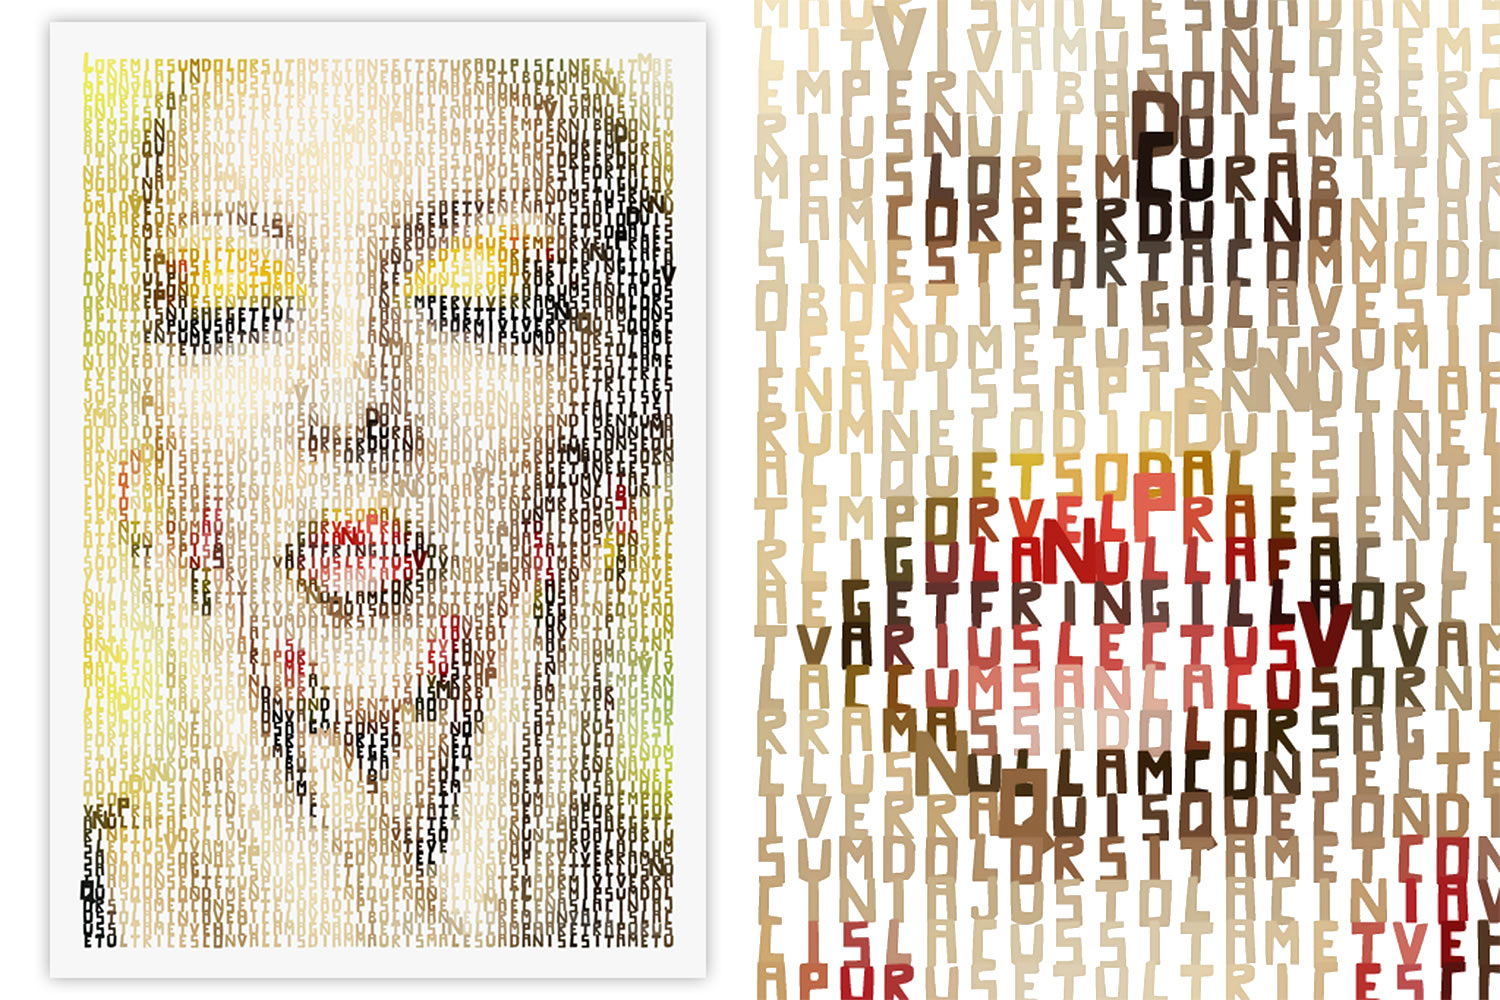 Typographic art, portrait of woman, Create Typographic Images with Typo-Painter